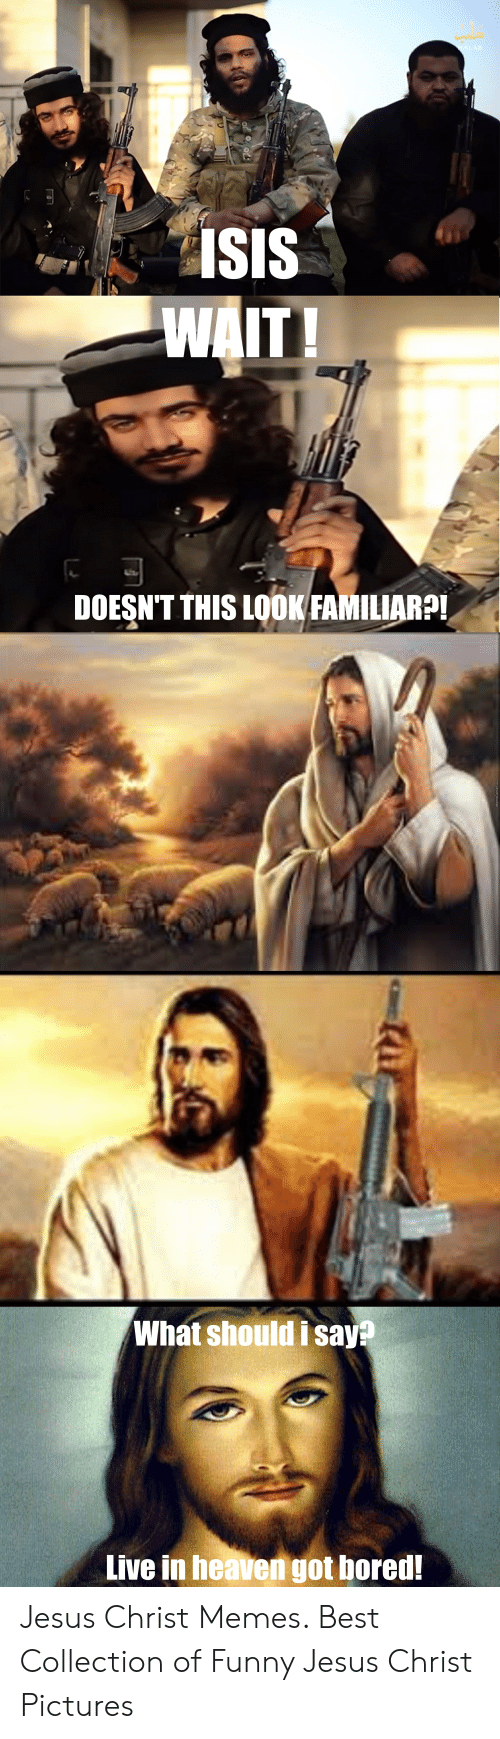 funny jesus: ISIS  DOESN'T THIS LOOK FAMILIARP!  What should i say?  Live in heaven got bored! Jesus Christ Memes. Best Collection of Funny Jesus Christ Pictures